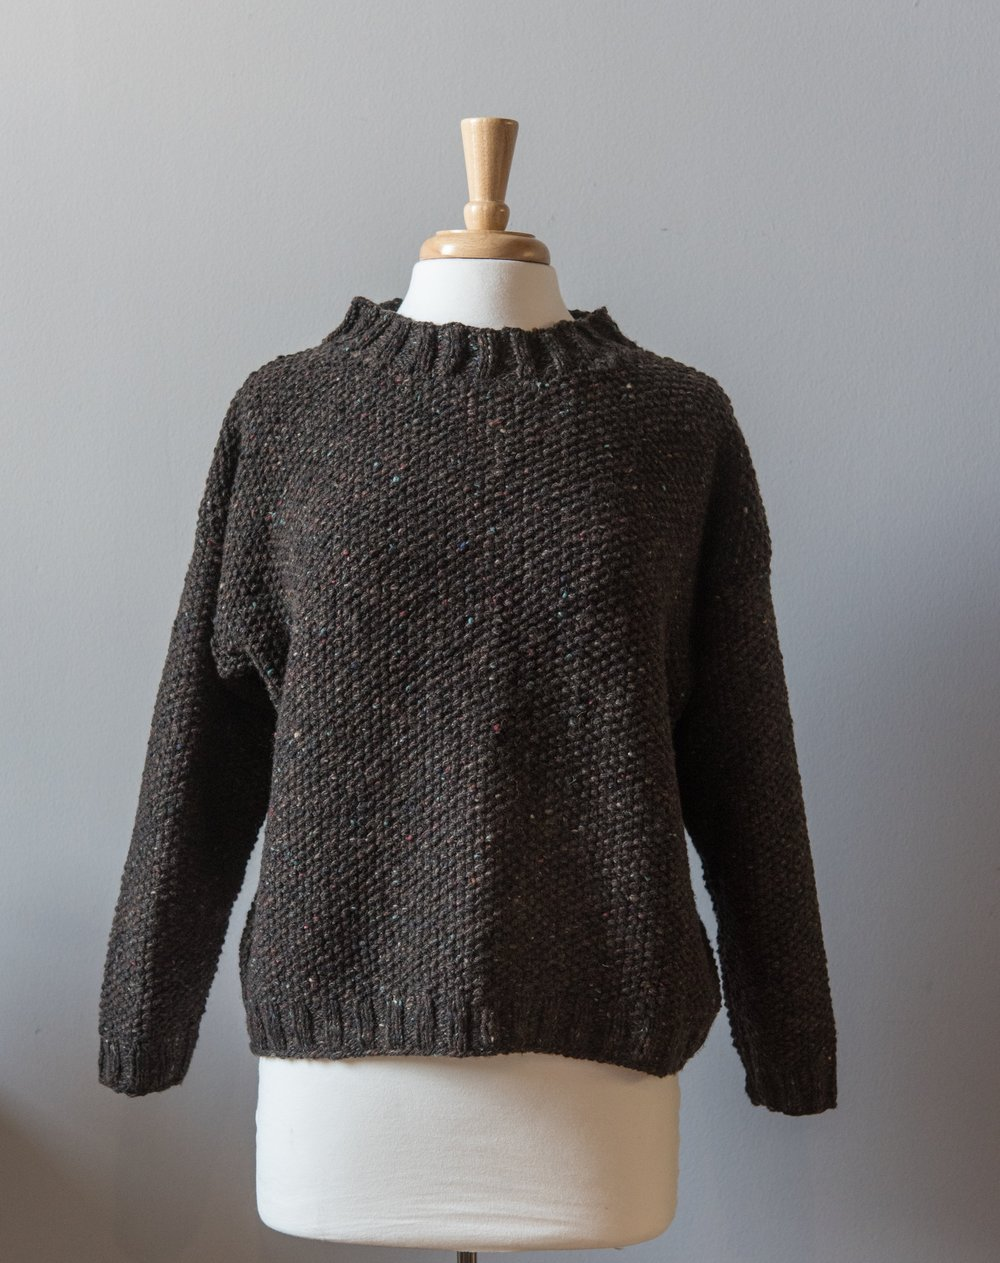 The Fibre Co. Arranmore,  Burtonport sweater